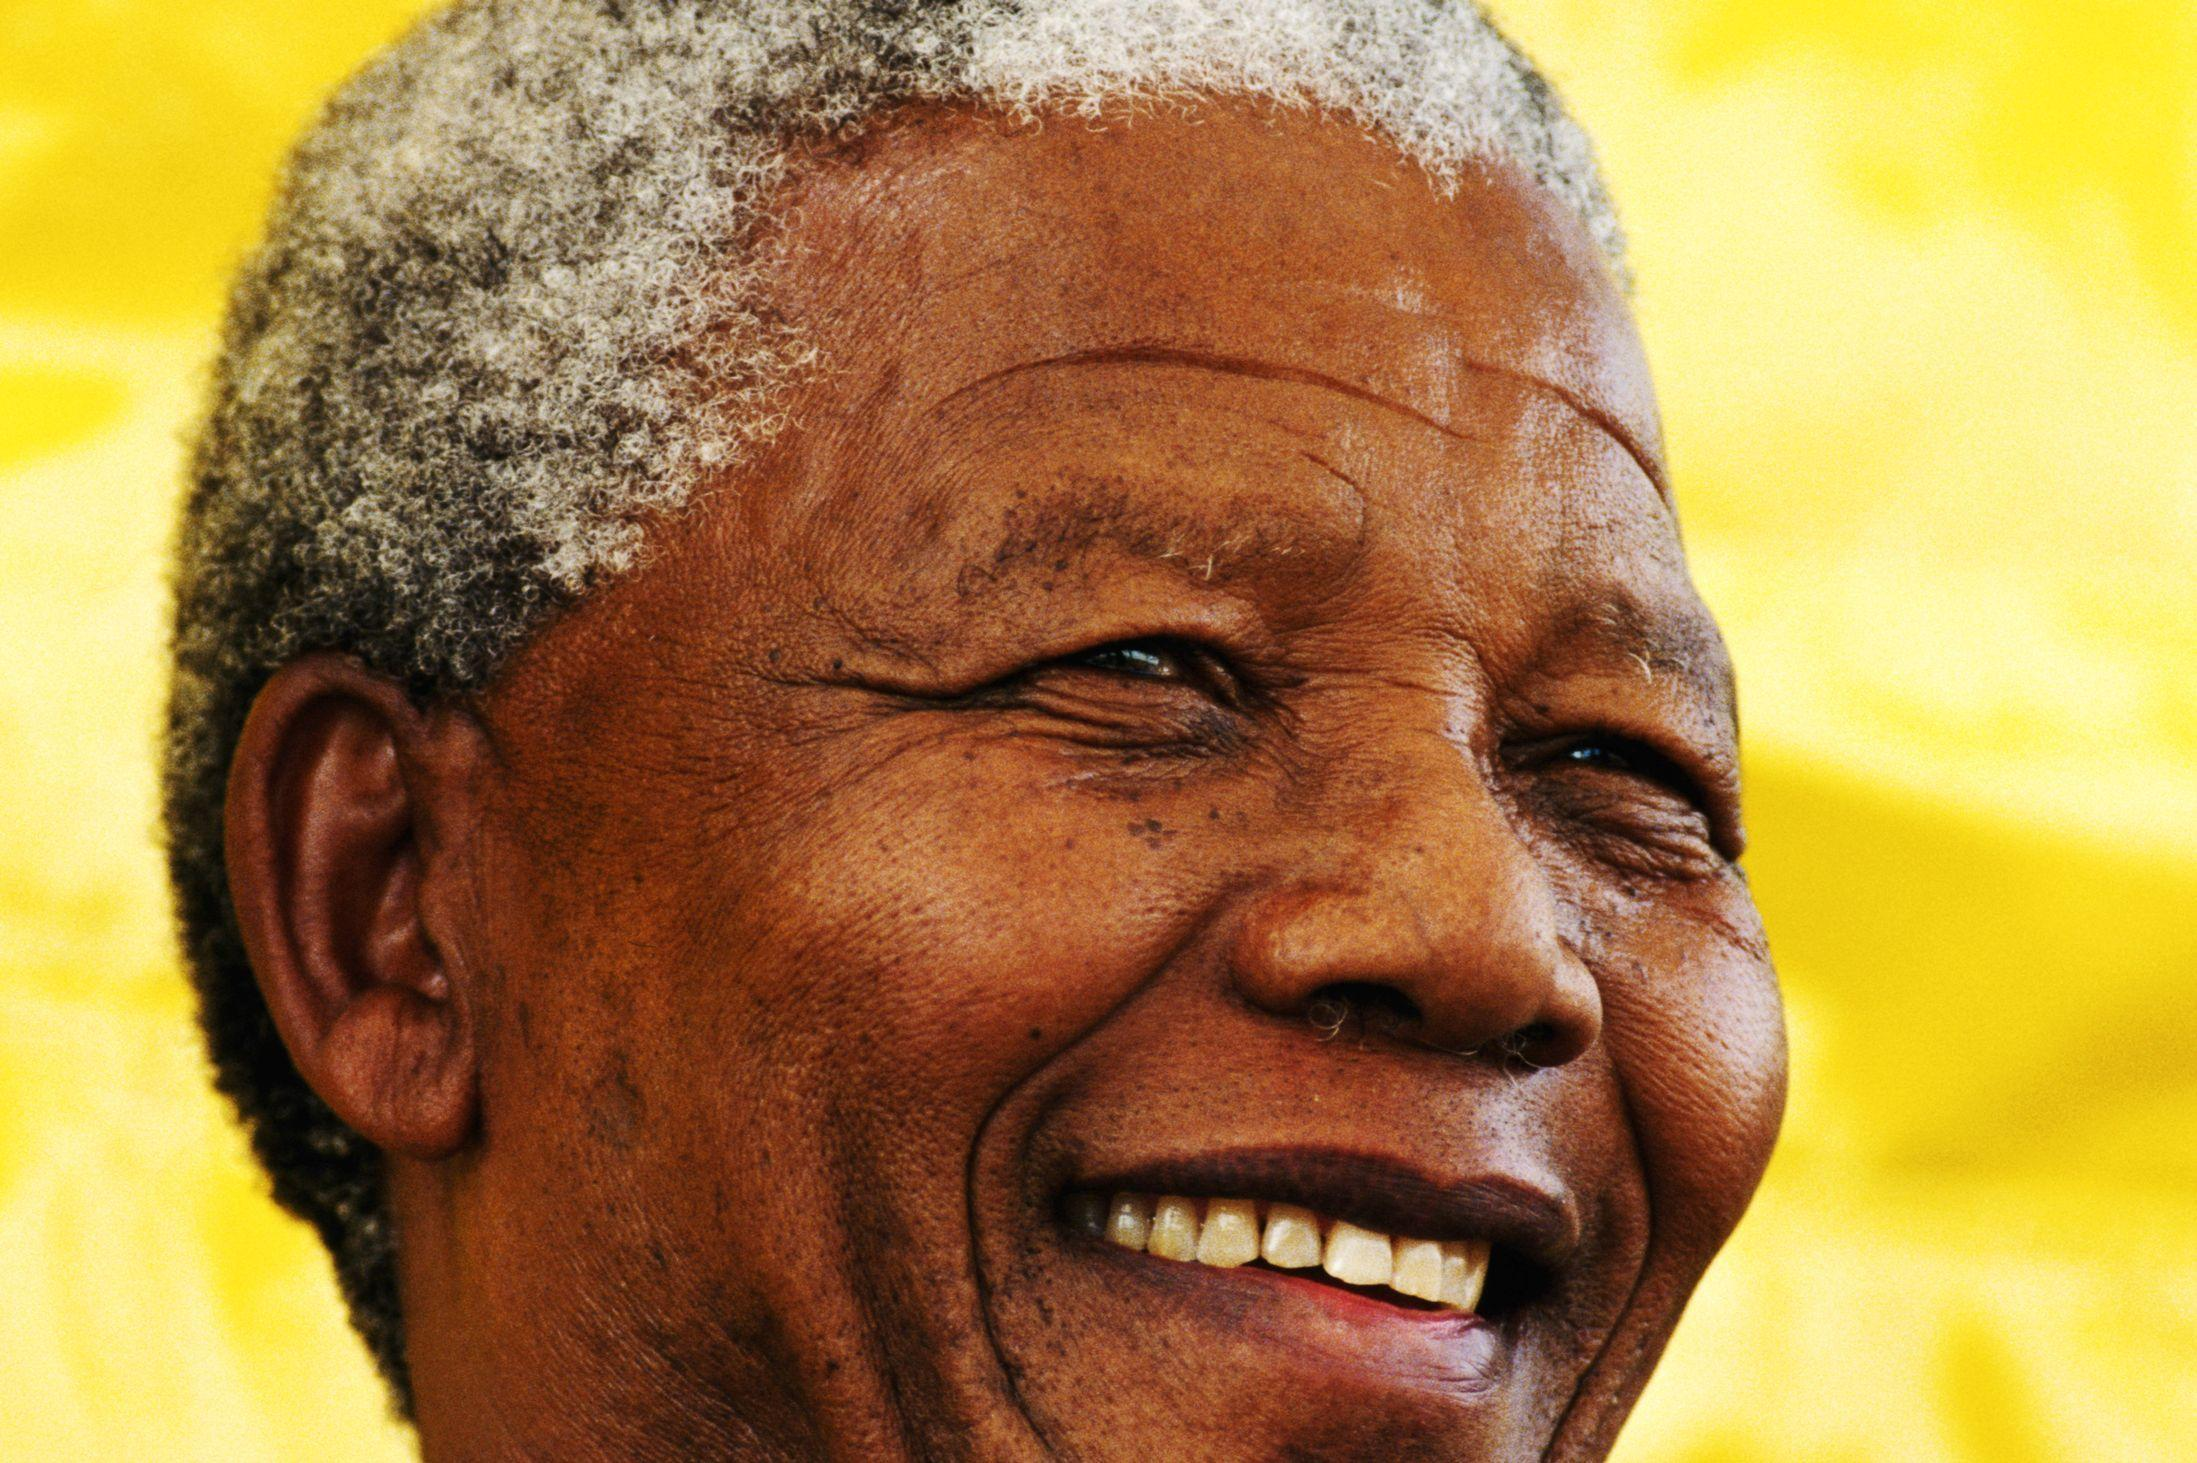 Local and World Leaders Pay Tribute to Mandela | inewmedia.org